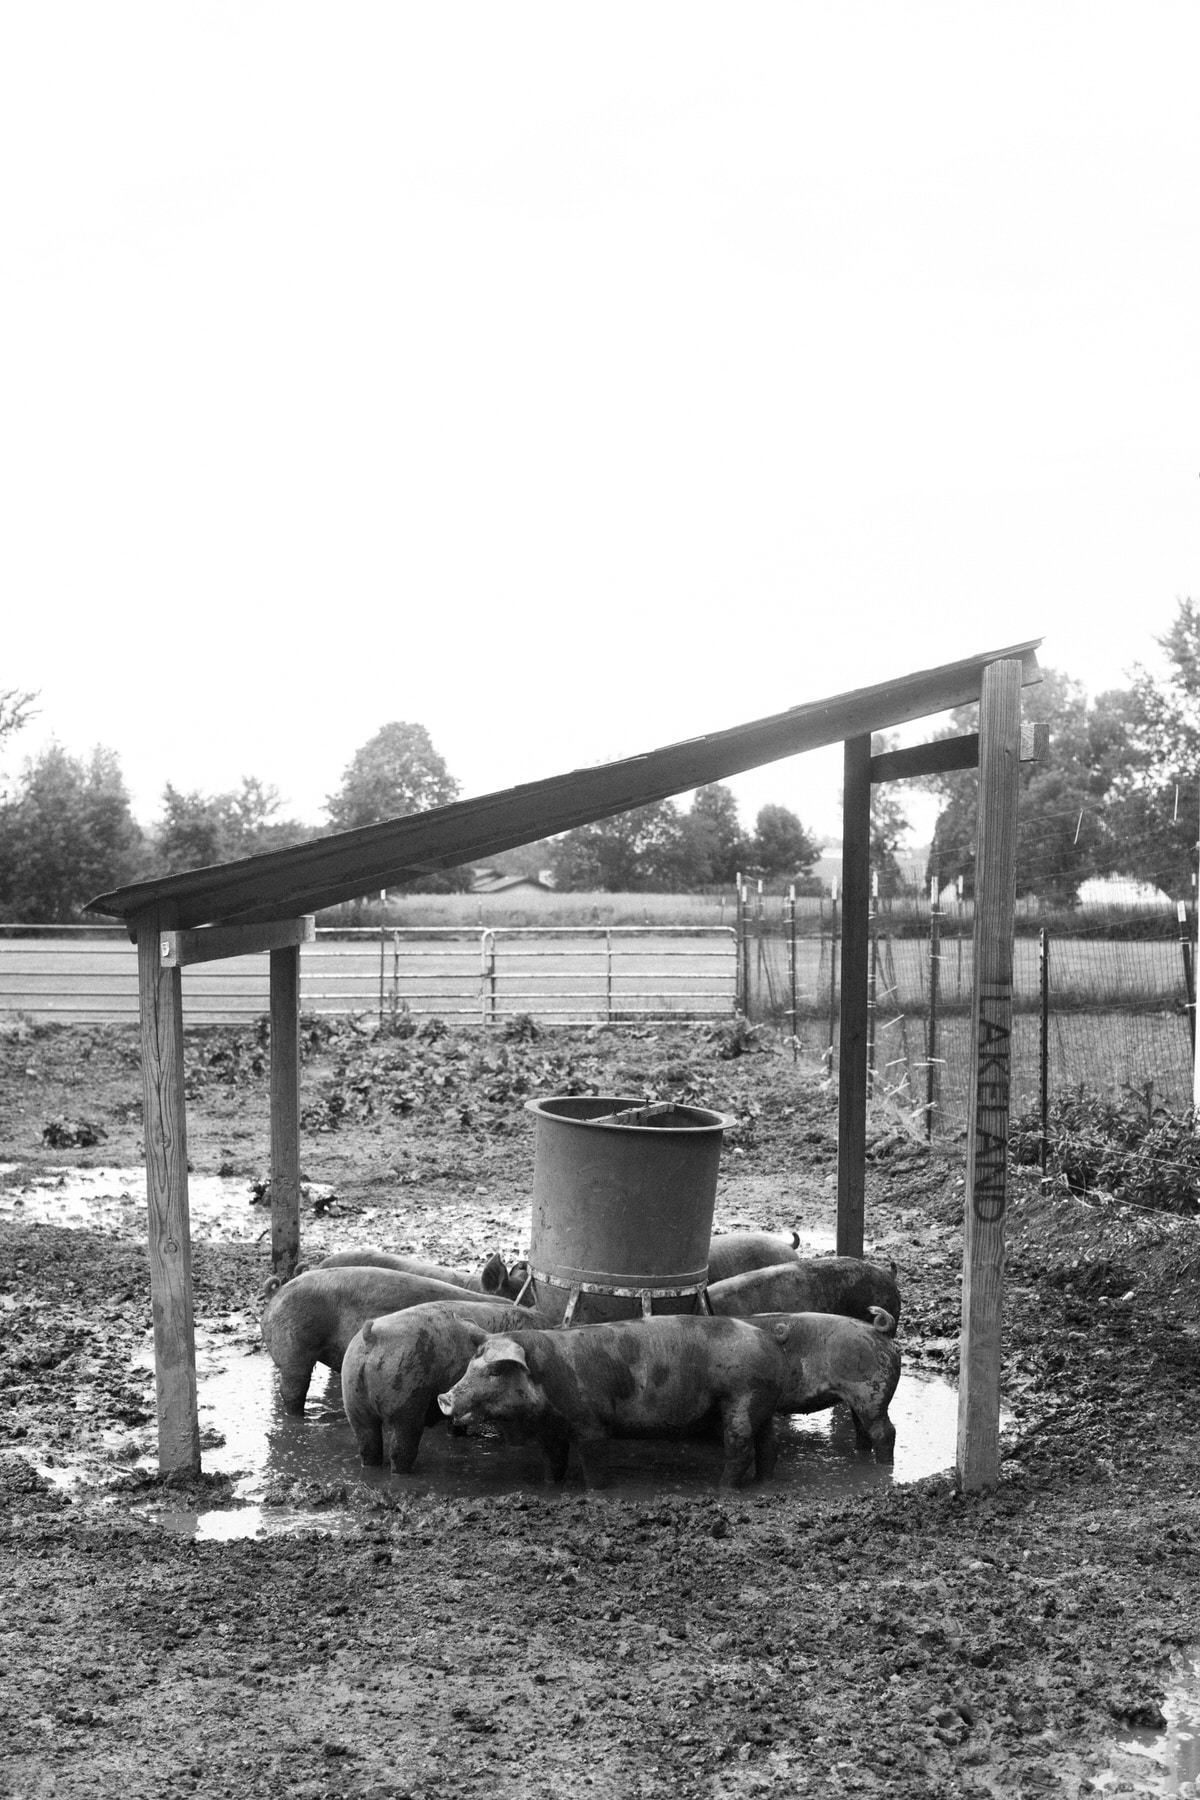 Humanely-raised-hogs-Wisconsin-farm-black-and-white-fine-art-photography-by-Studio-L-photographer-Laura-Schneider-_9490